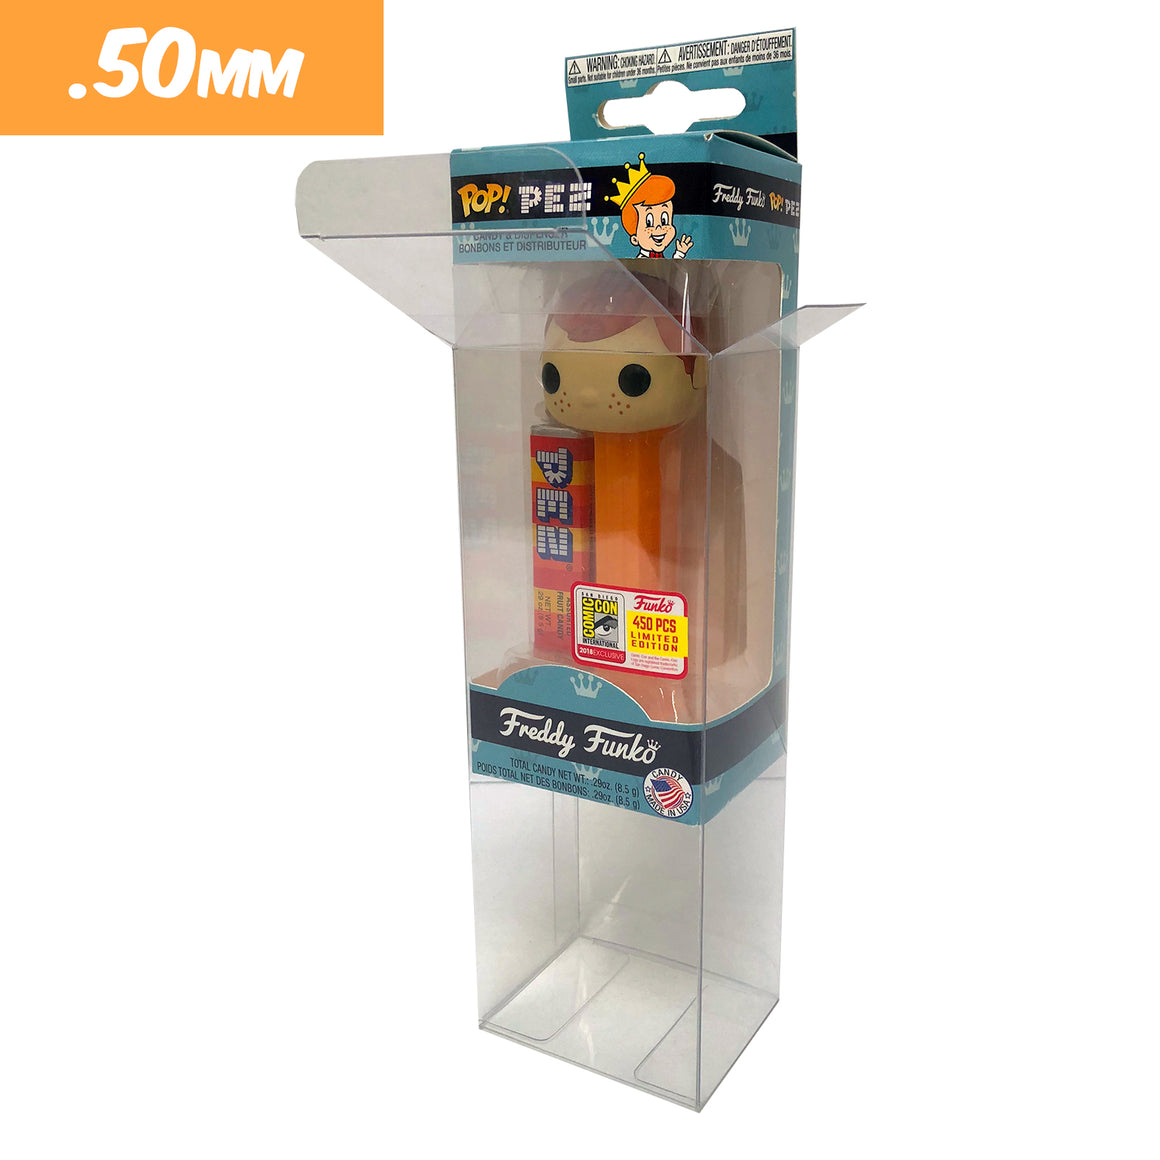 **AT SDCC, ORDERS GO OUT NEXT WEEK** Pez Protectors for Funko Pop Pez, 50mm thick